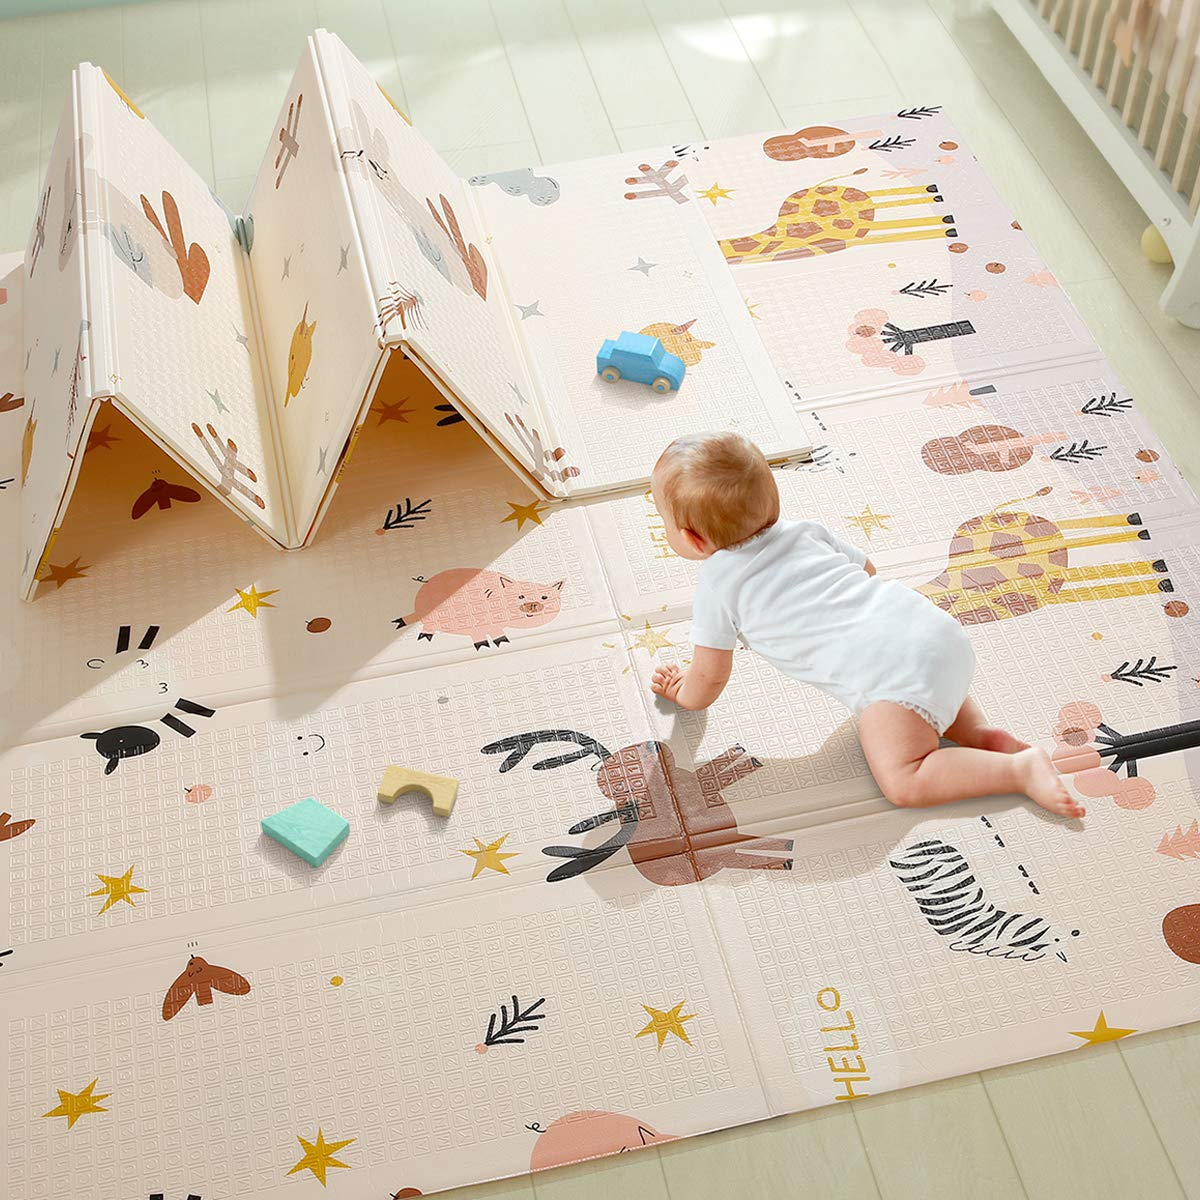 Baby Play Mat, Extra Large Baby Crawling Mat, Portable Waterproof Non Toxic Soft Foam, Anti-Slip Folding Puzzle Mat Playmat for Infants, Toddlers, Kids, Indoor or Outdoor Use, 77x70x0.6 inch